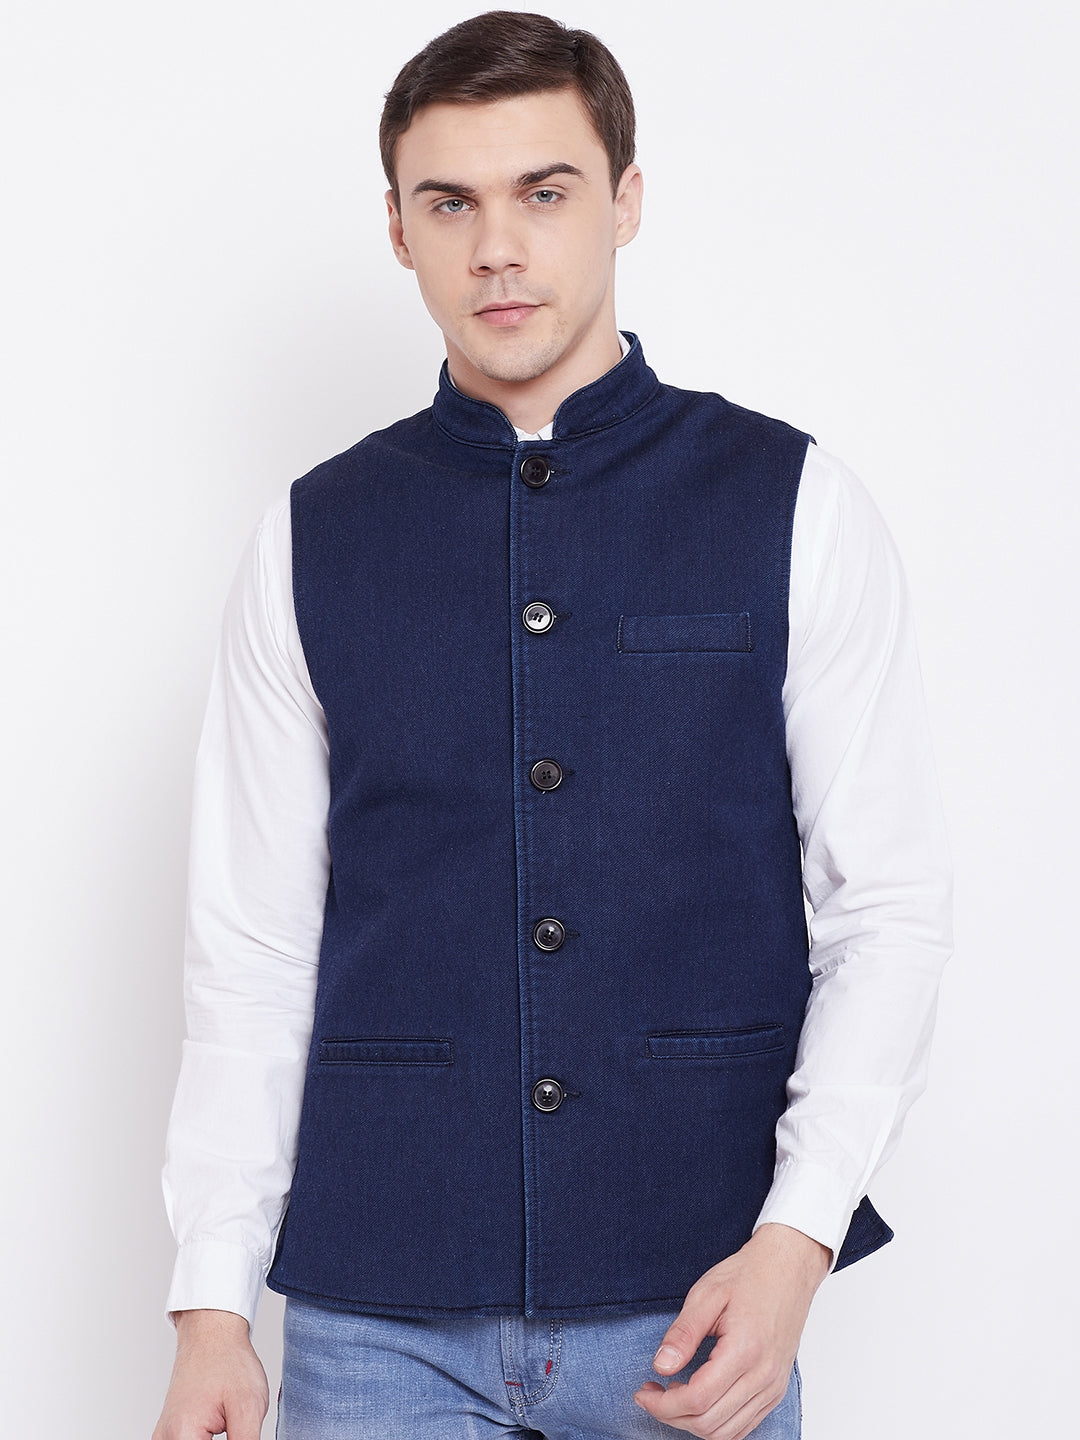 KROSSSTITCH Men Solid Dark Blue Jacket